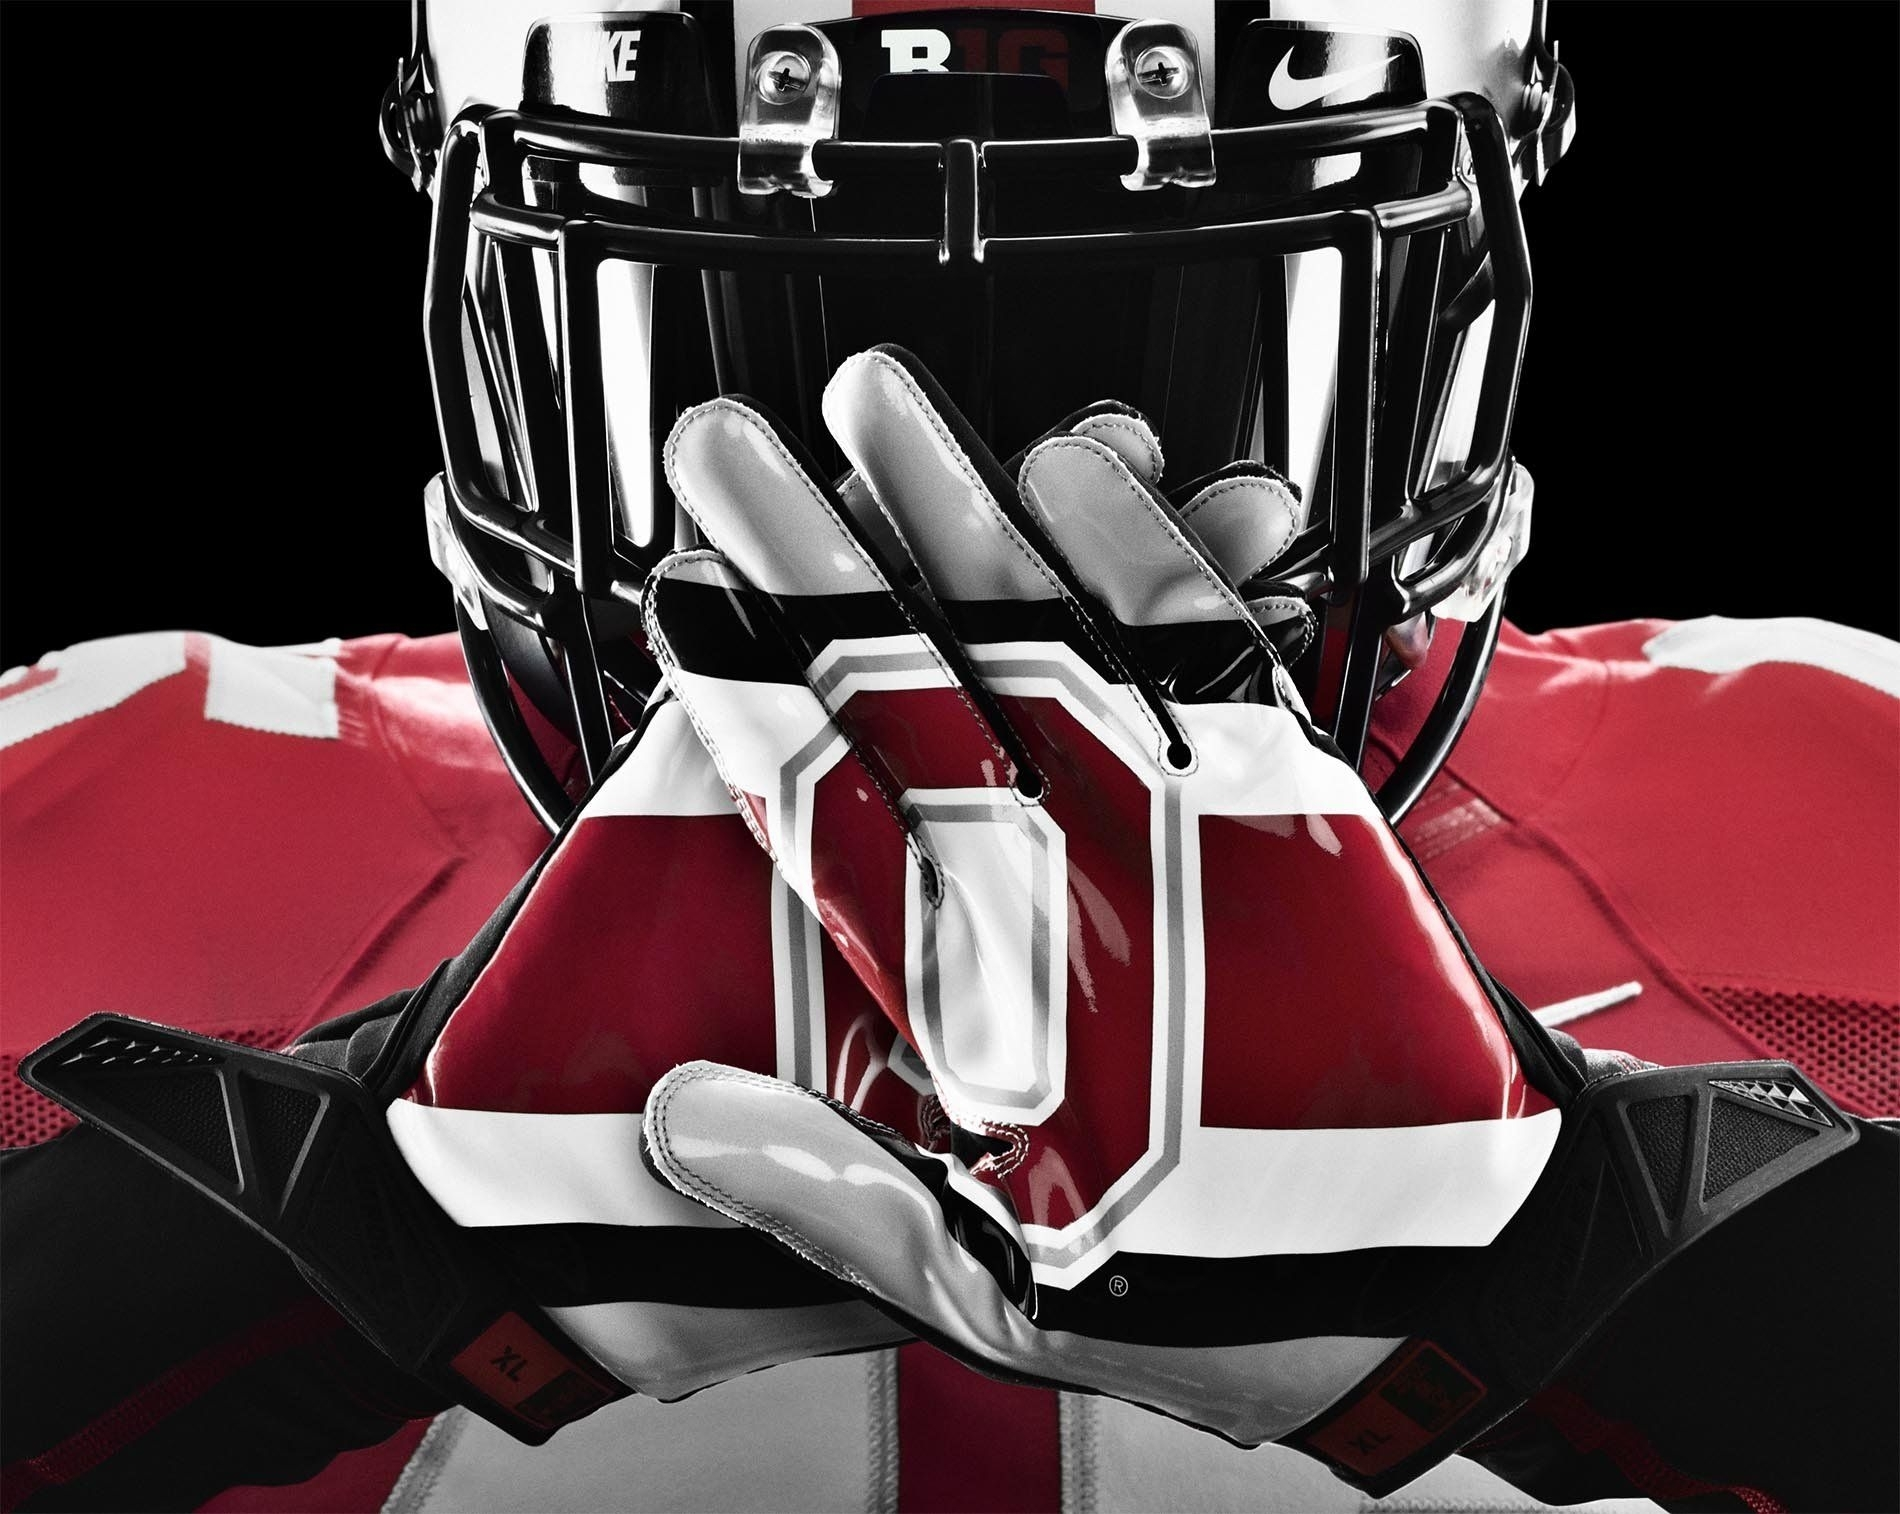 ohio state buckeyes wallpaper | ohio state buckeyes college football